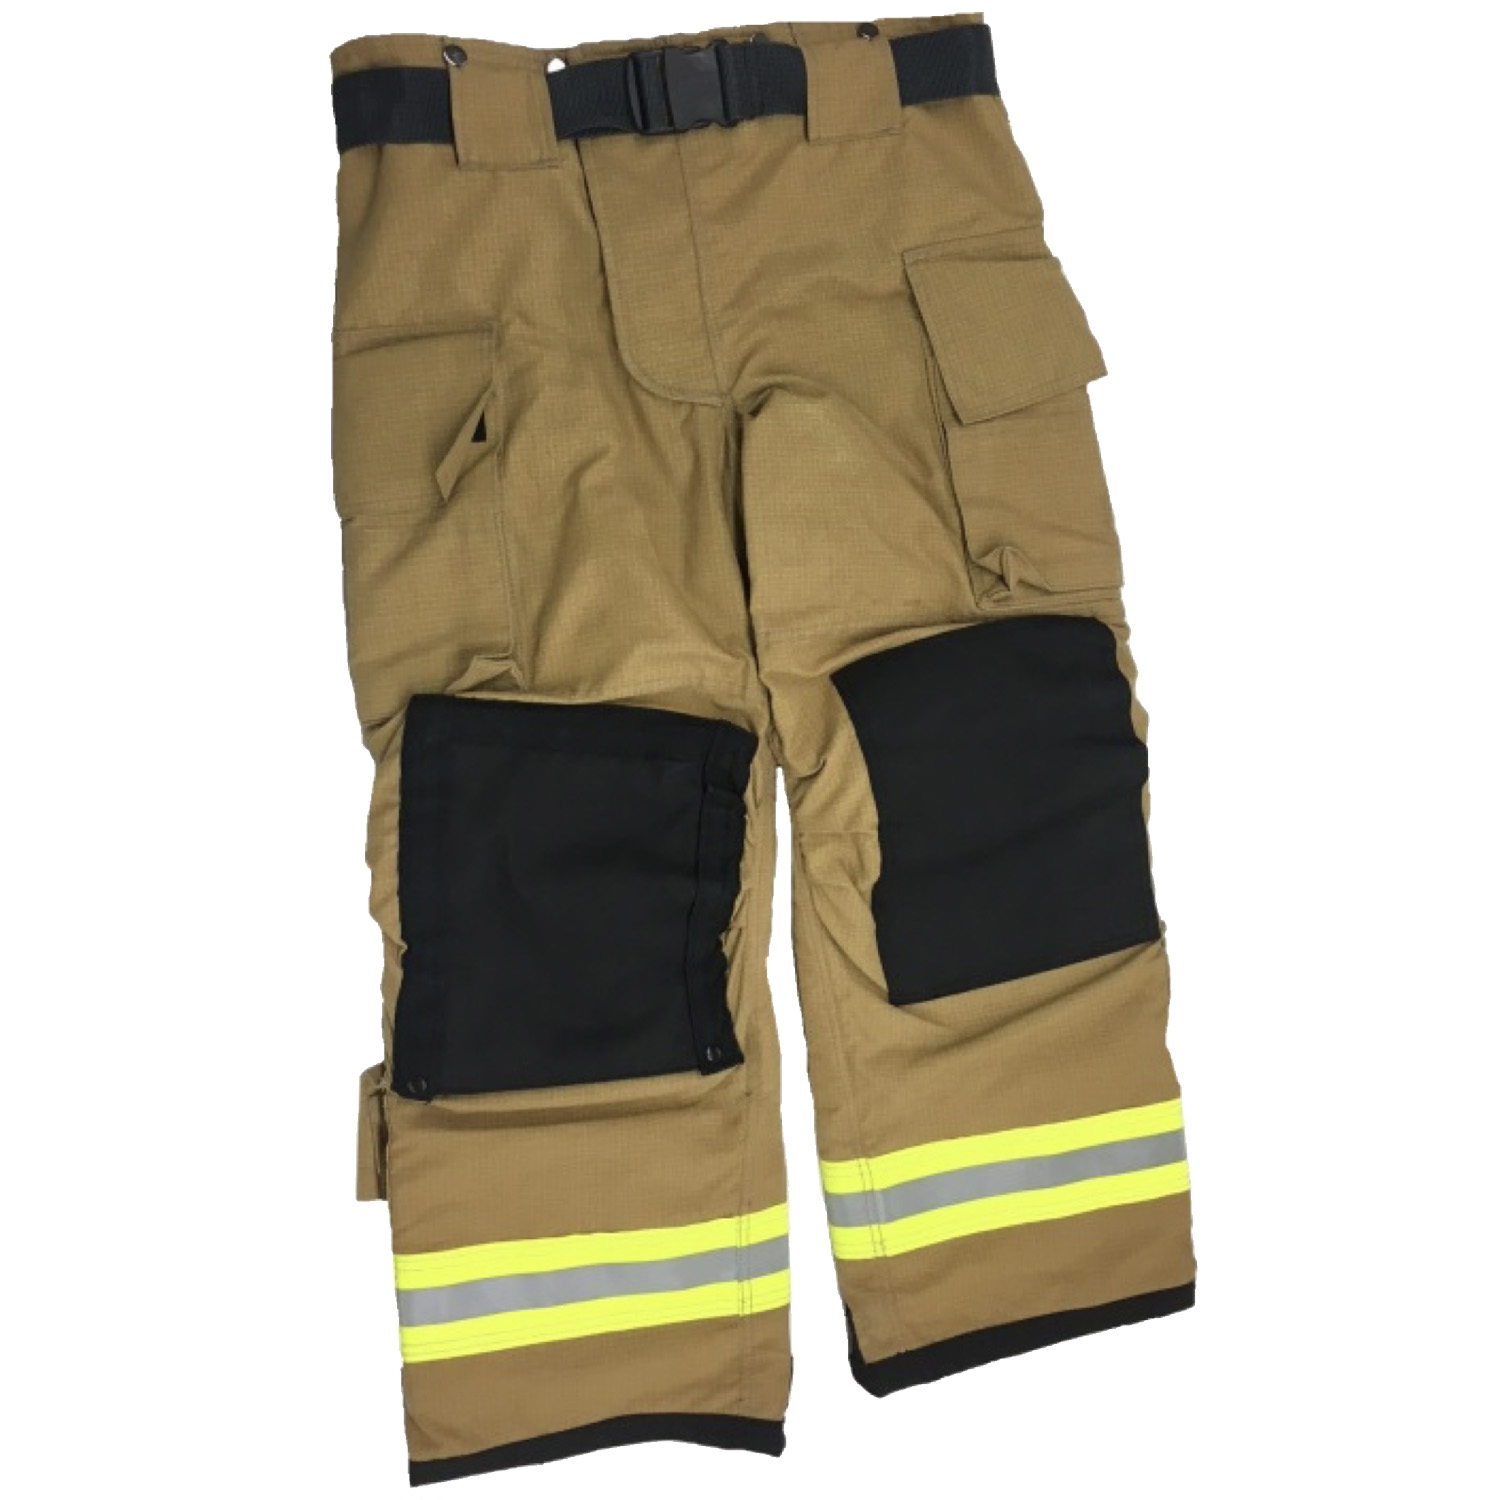 Ricochet Air Force Pant with Knee Guards